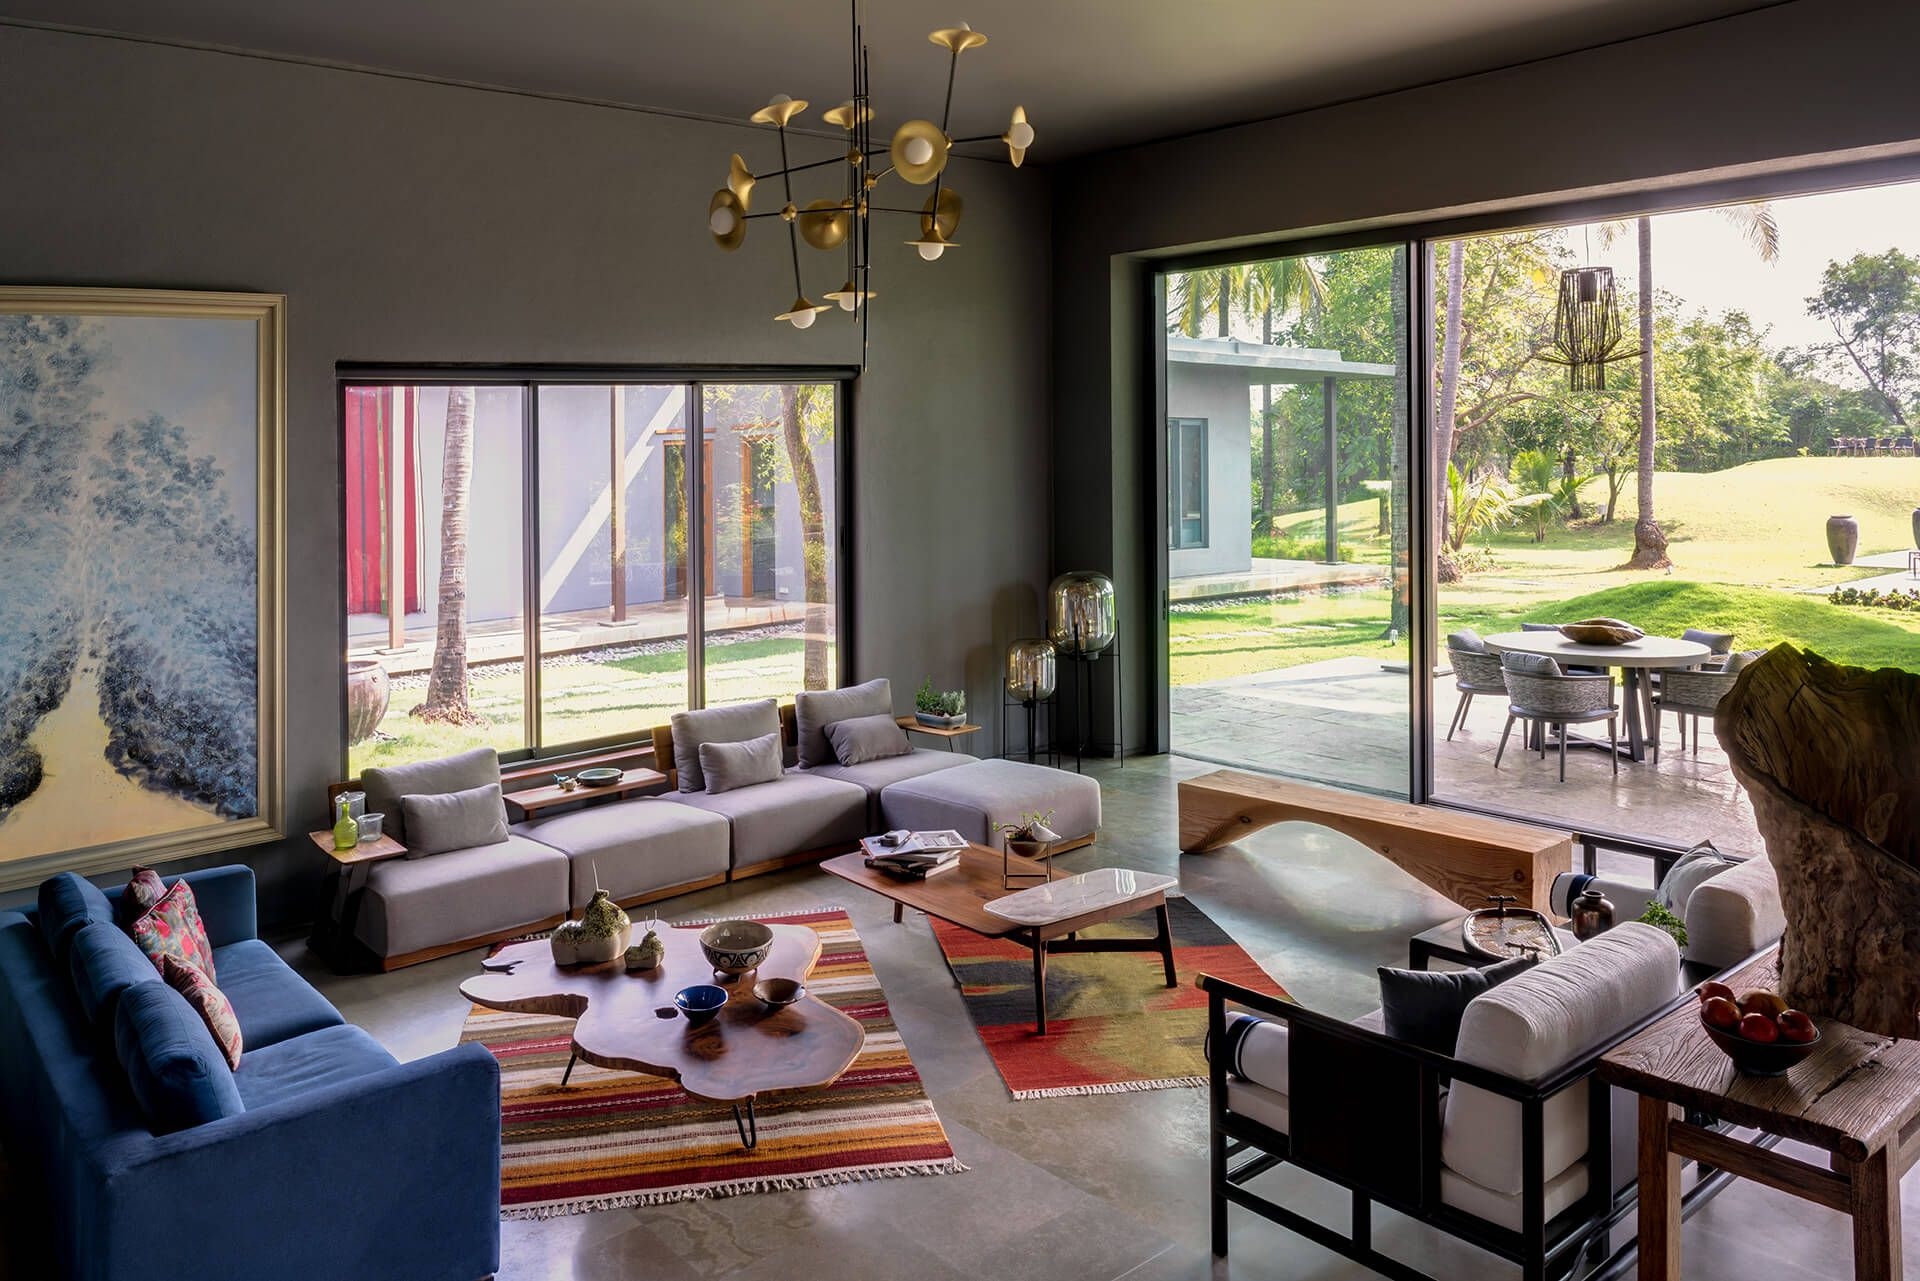 The Warm Tones With Natural Lighting Lounge Space Of A Holiday Home In Alibaug India Https I Re In 2020 What Is Interior Design Interior Design Interior Architecture